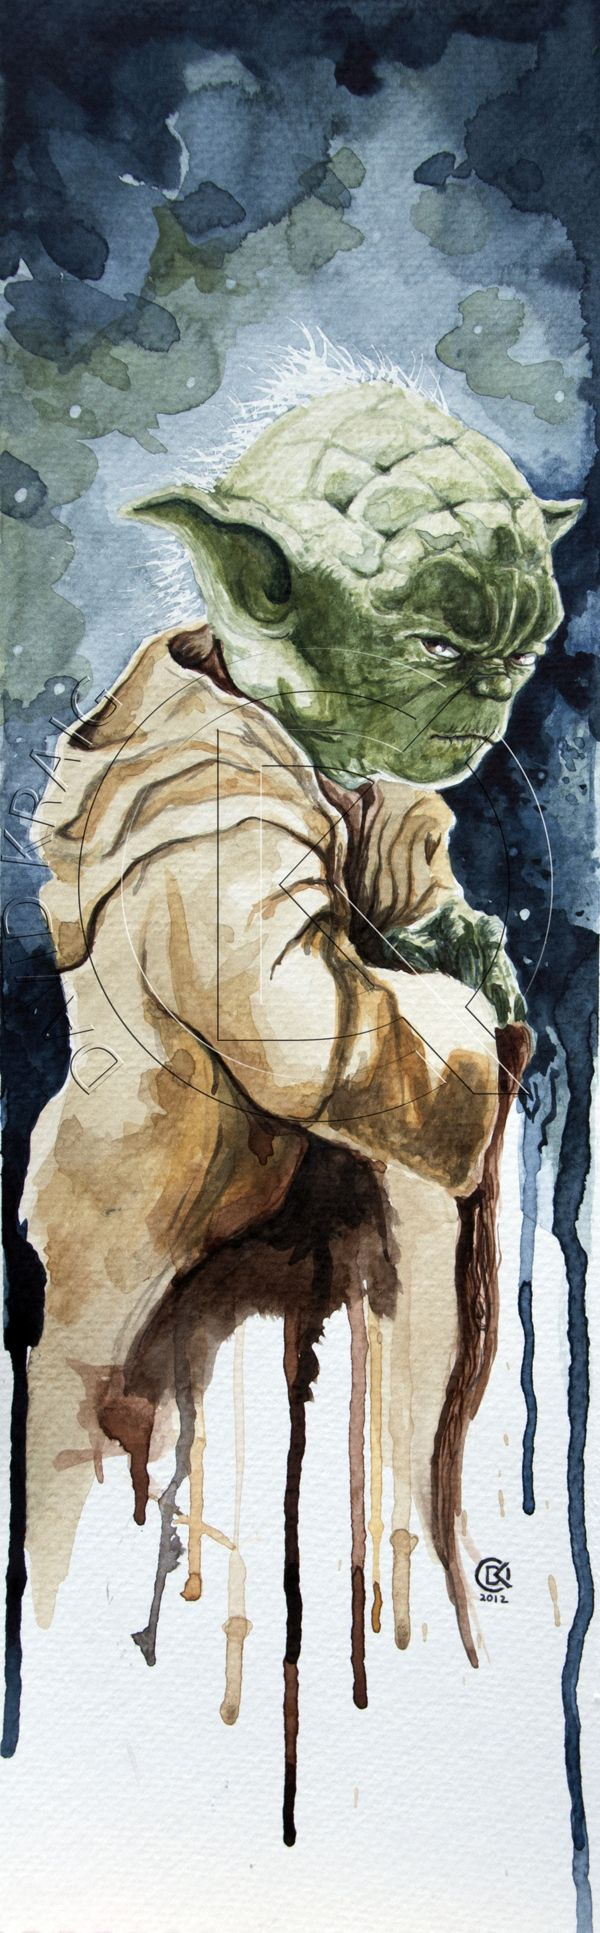 Yoda Watercolor Study by David Kraig, via Behance